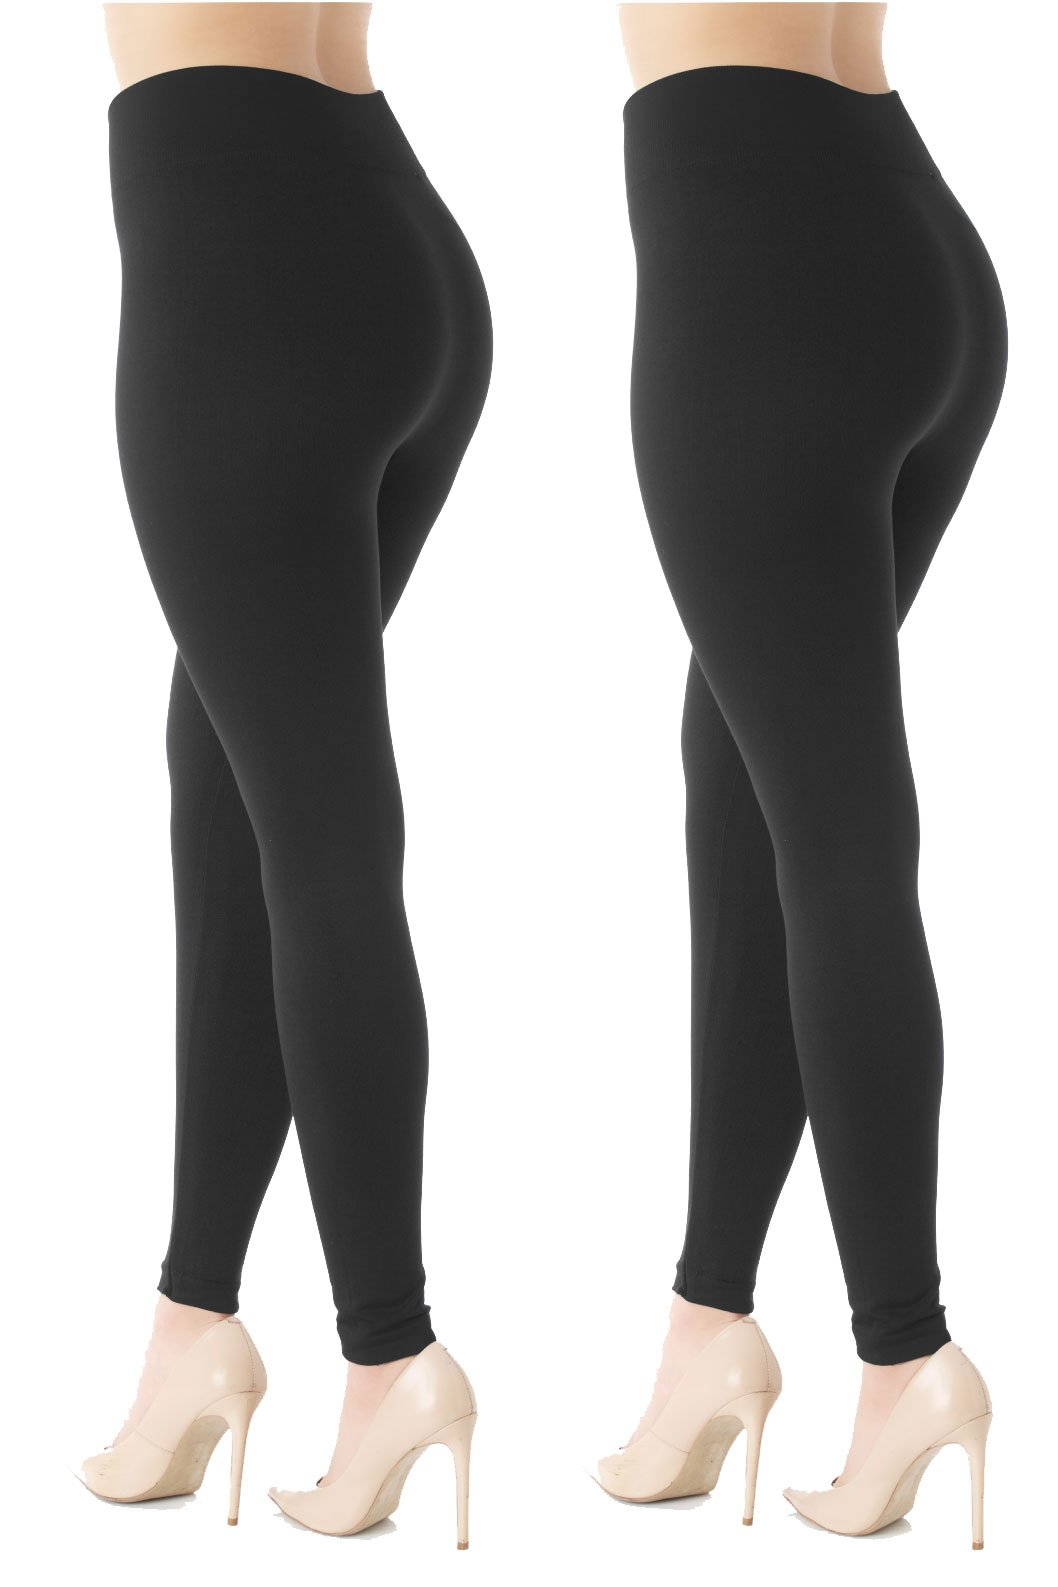 Premium Women's Fleece Lined Leggings - High Waist - Regular and Plus Size - 20+ Colors (L/XL (12-20), 2 Pack Black)